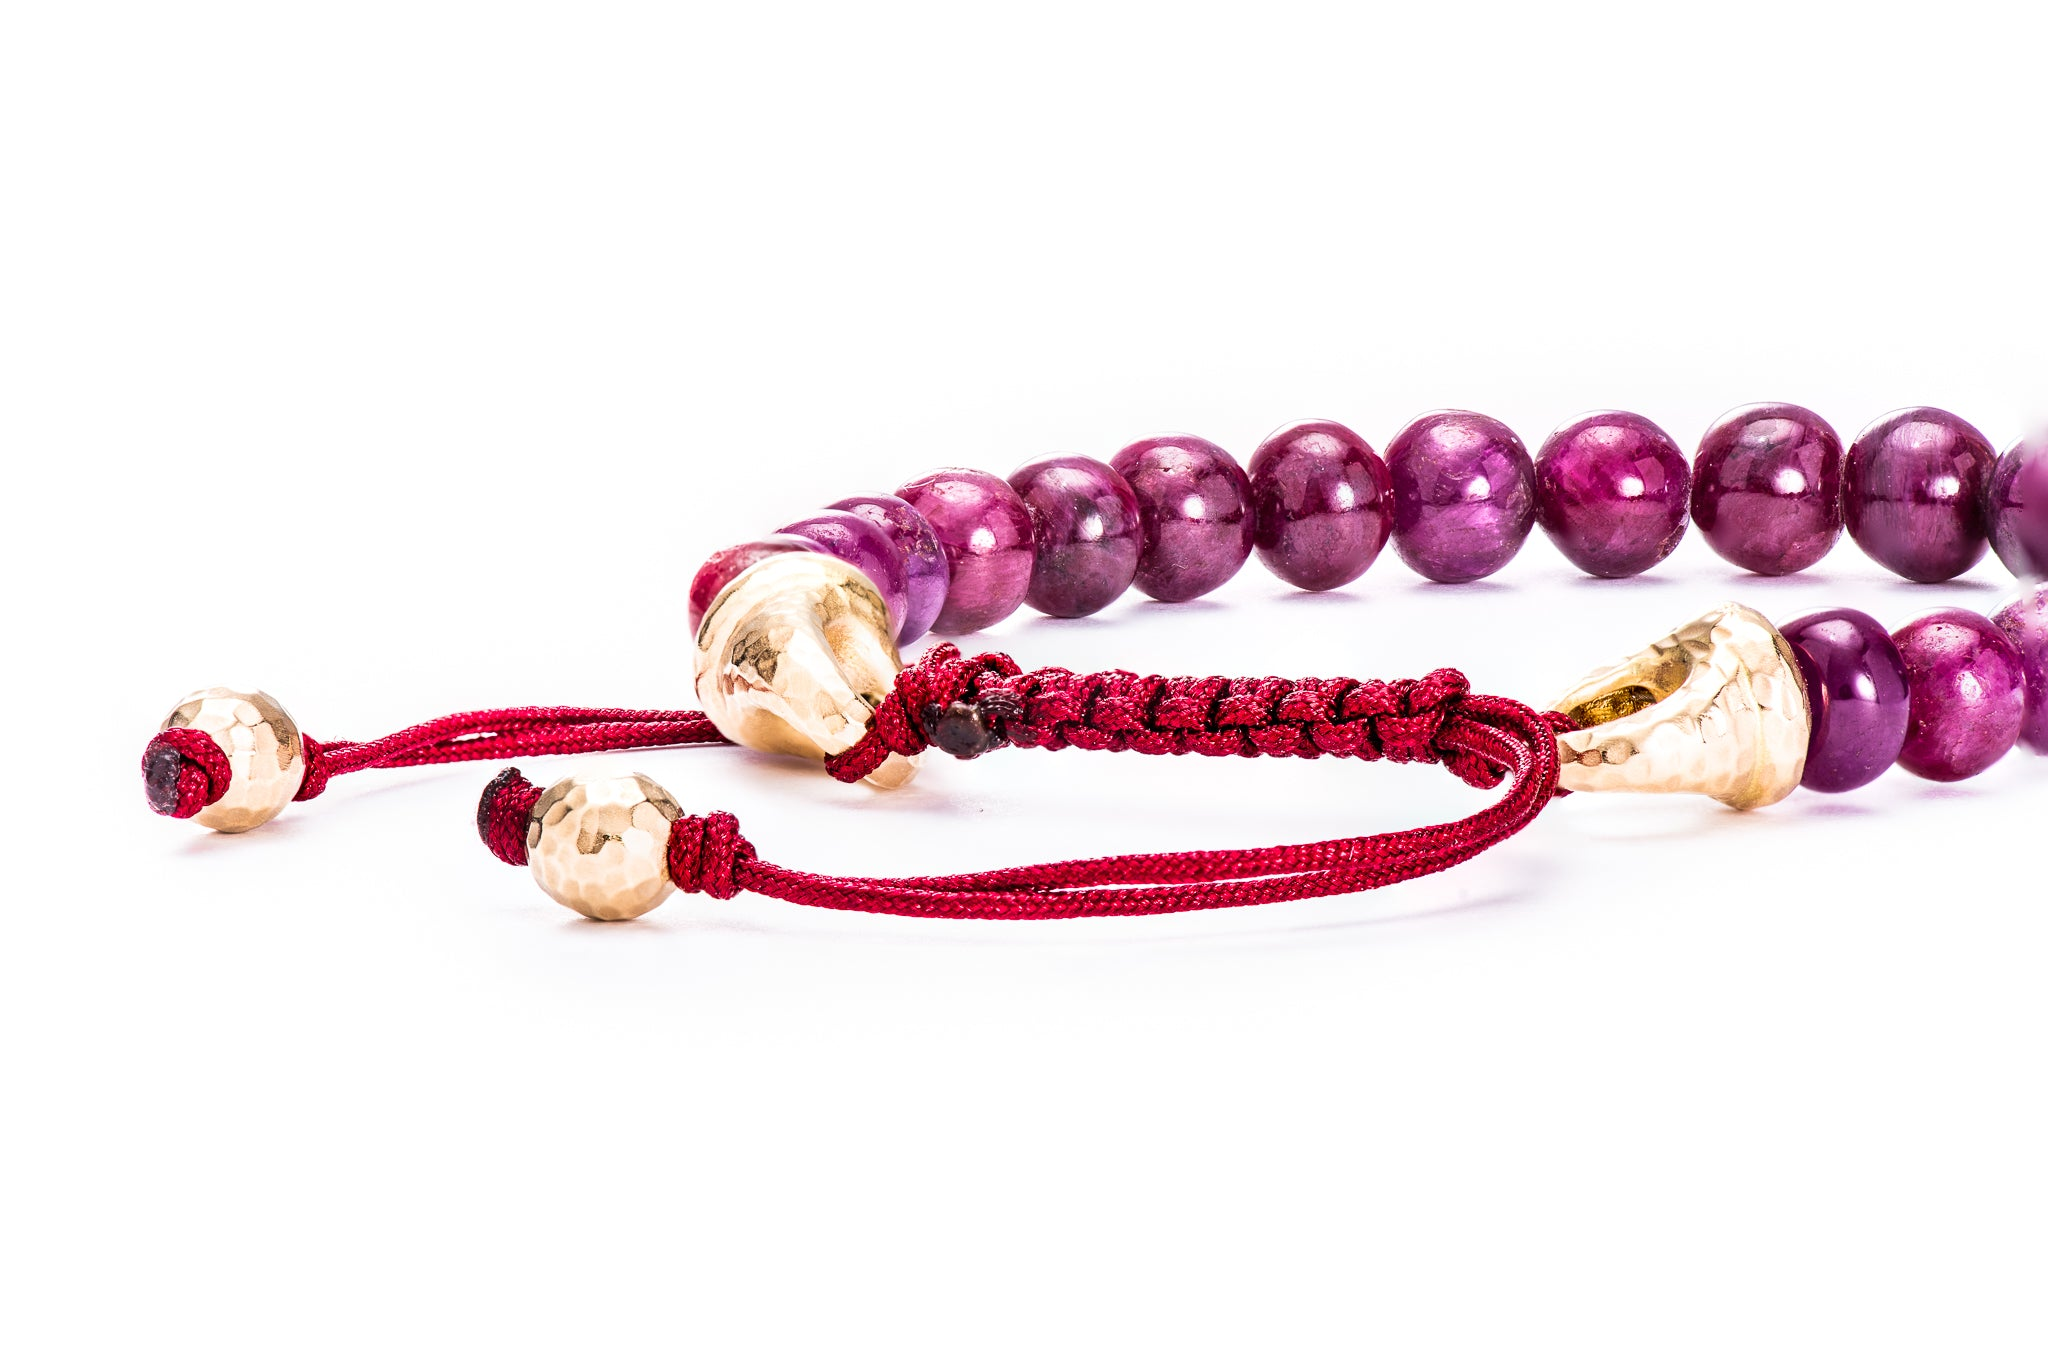 XL Ruby Bead Bracelet w/ 18K Yellow Gold Macramé